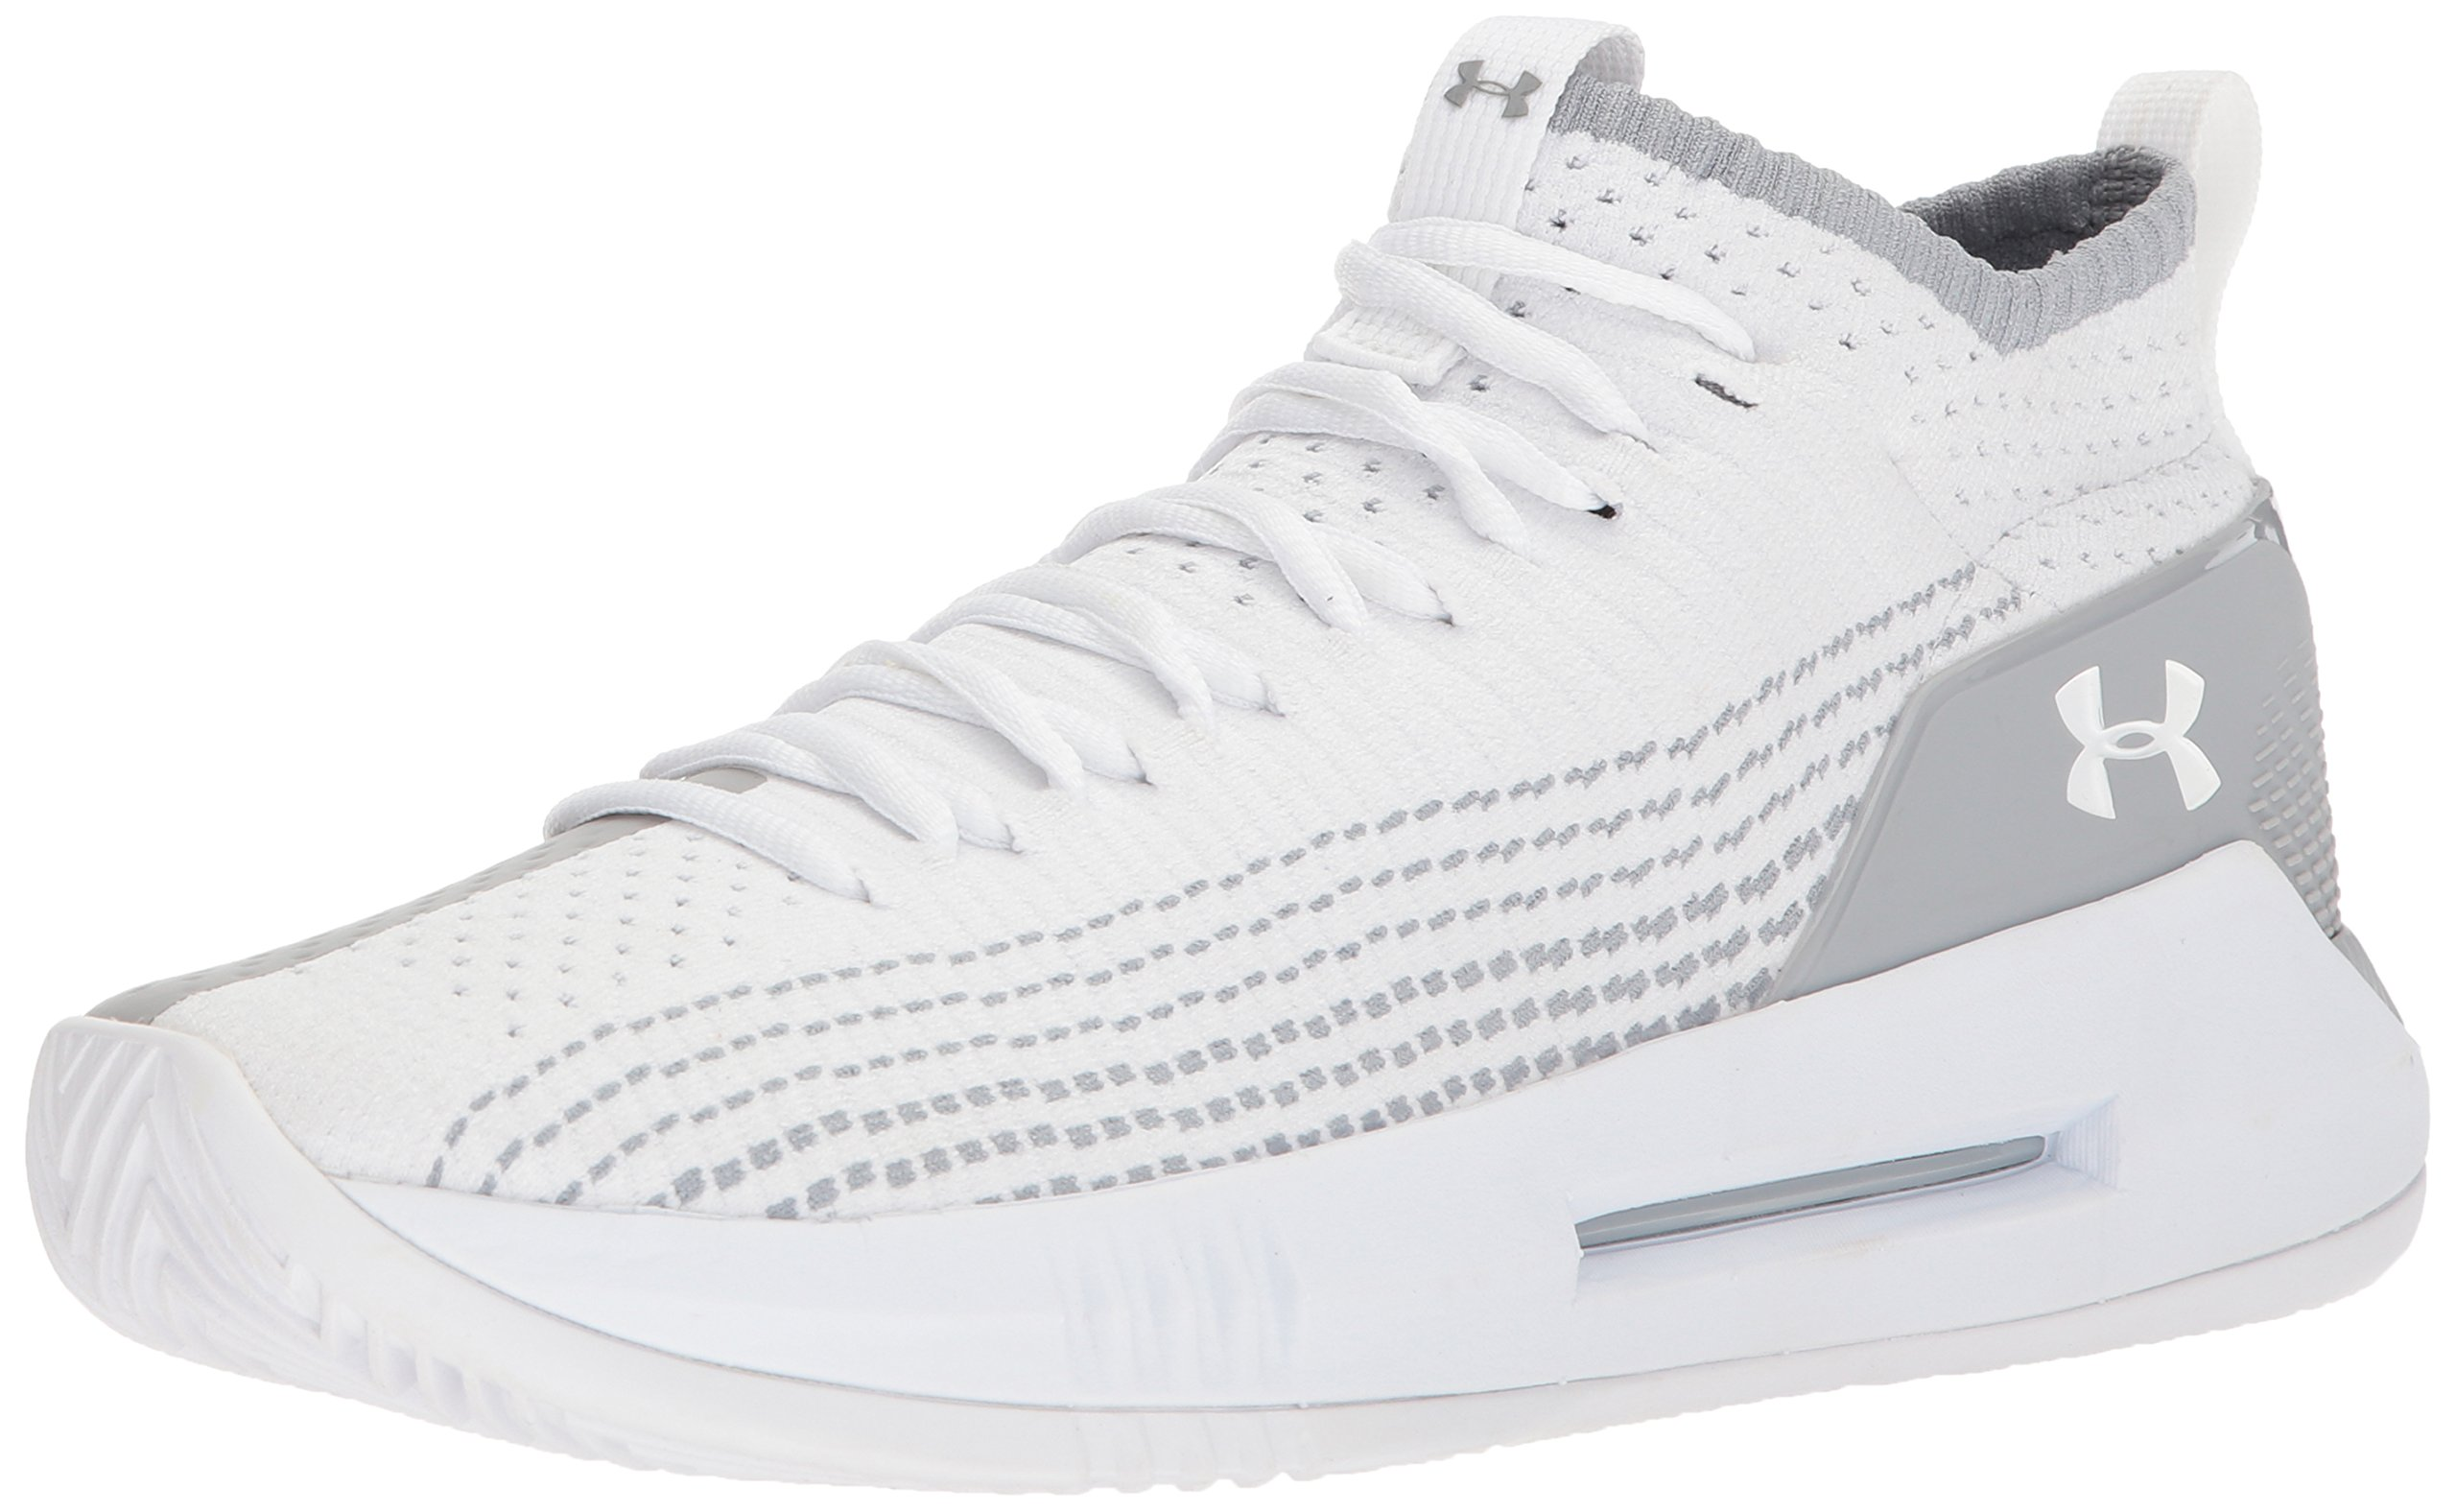 Under Armour Men's Heat Seeker Basketball Shoe, White (100)/White, 11.5 by Under Armour